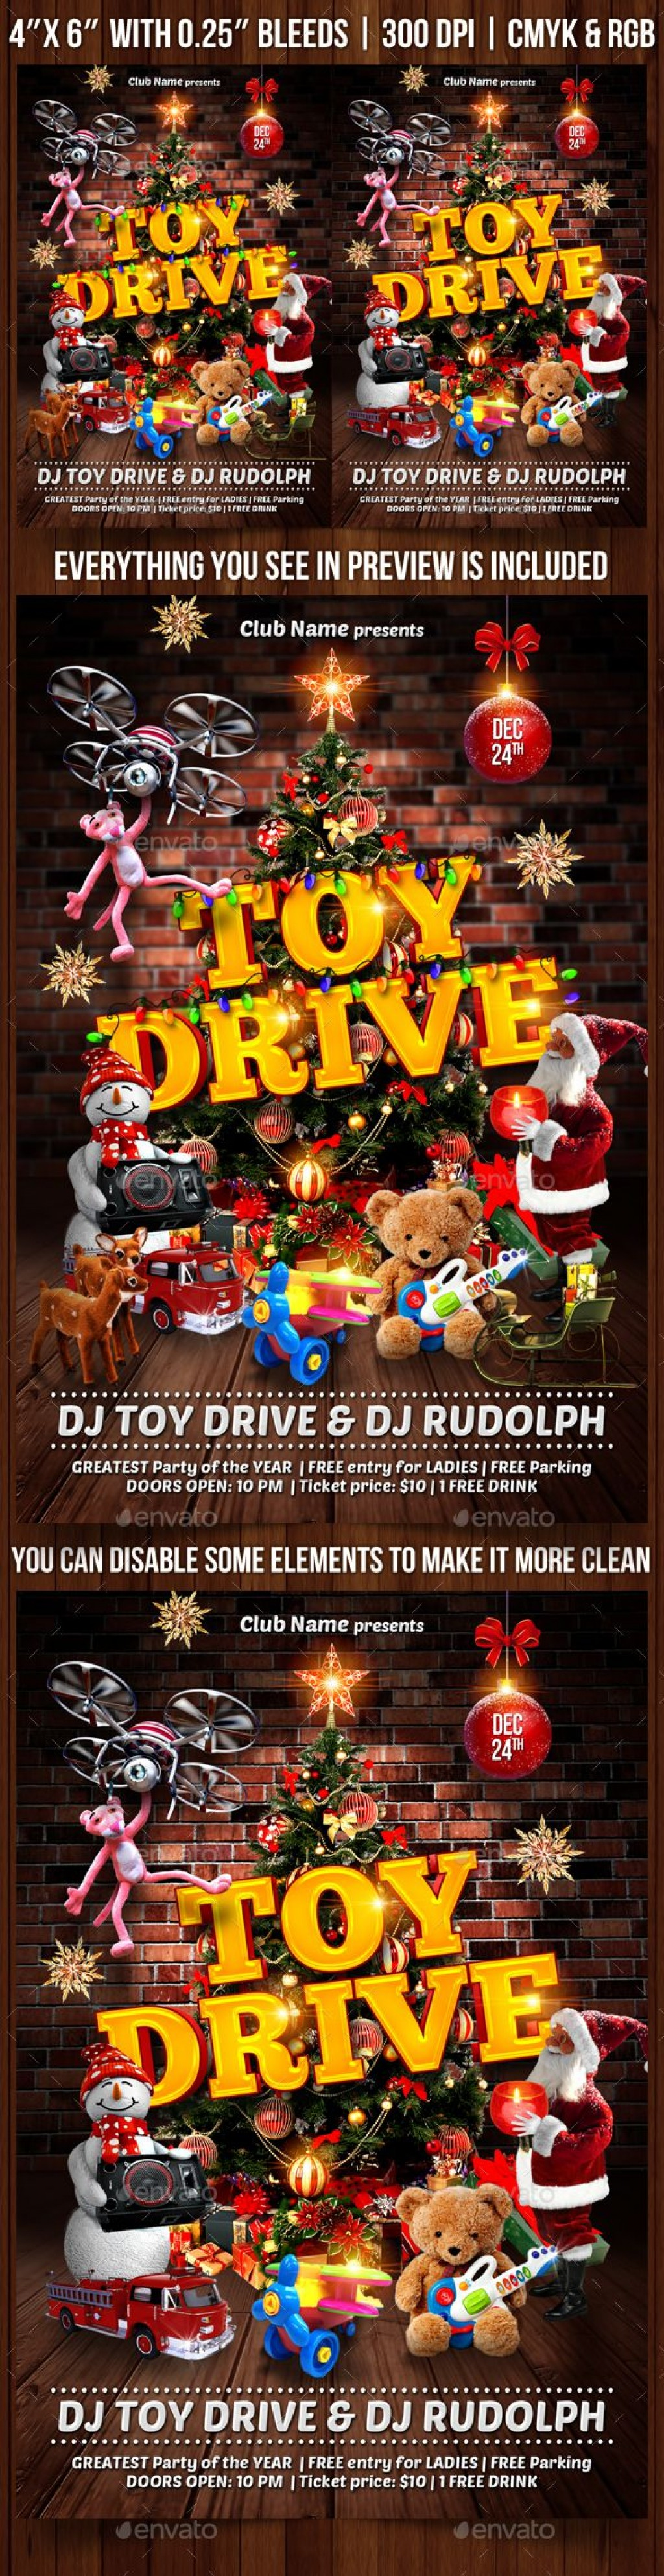 008 Frightening Toy Drive Flyer Template Highest Clarity  Holiday Download Free WordLarge